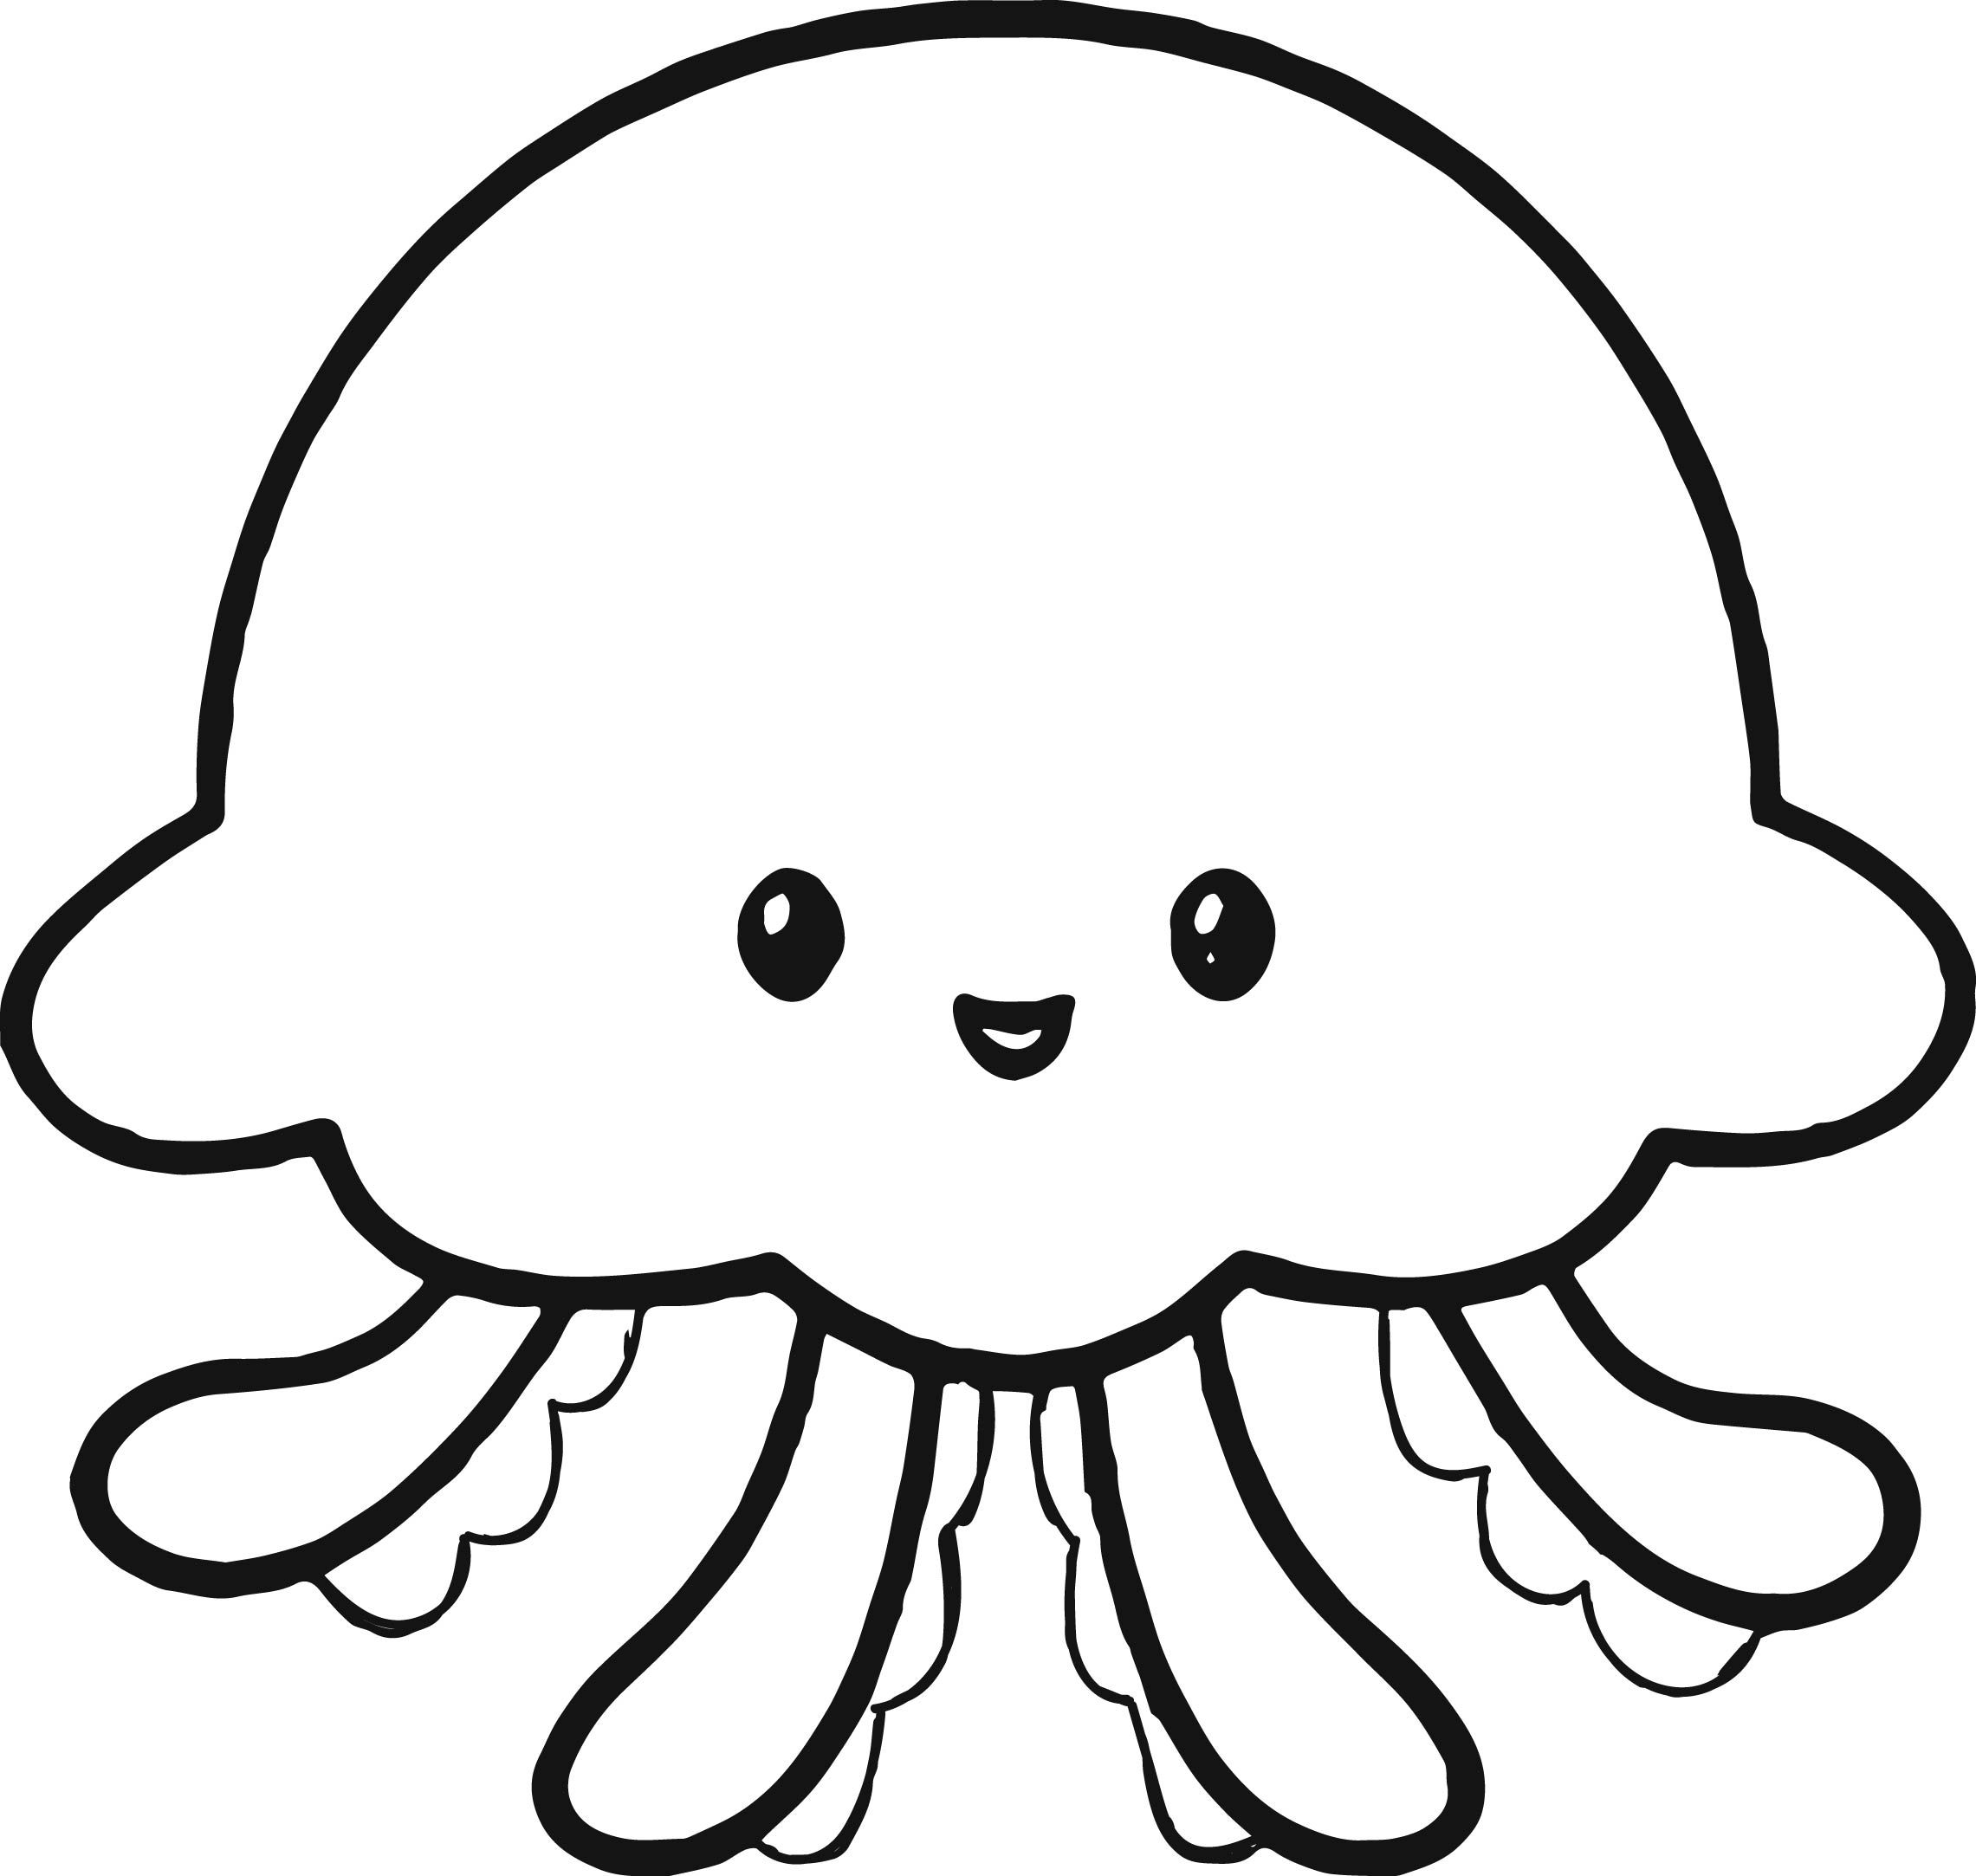 Awesome Cute Jellyfish Coloring Page Cute Drawings Cute Coloring Pages Fish Coloring Page